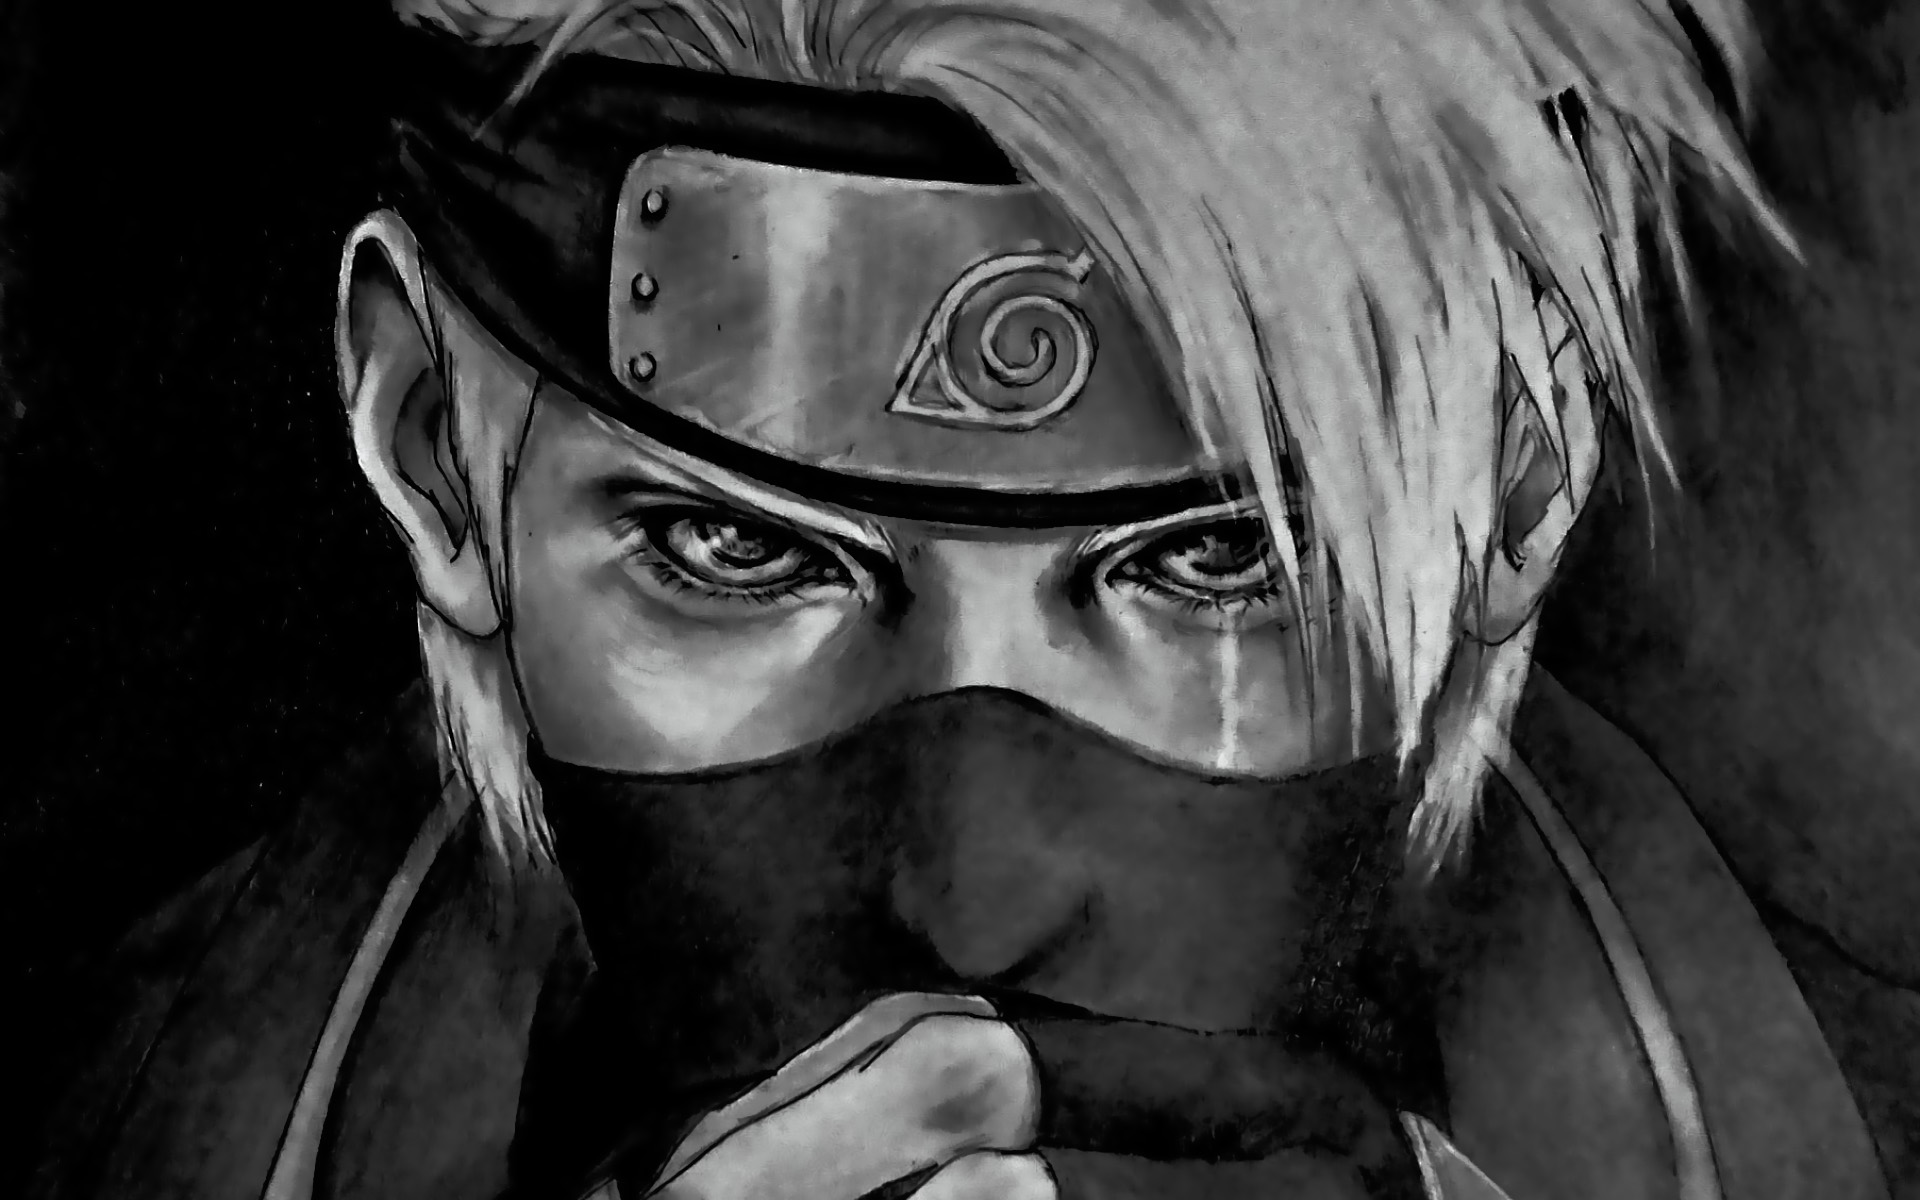 Anime Wallpaper Kakashi Hatake from Naruto